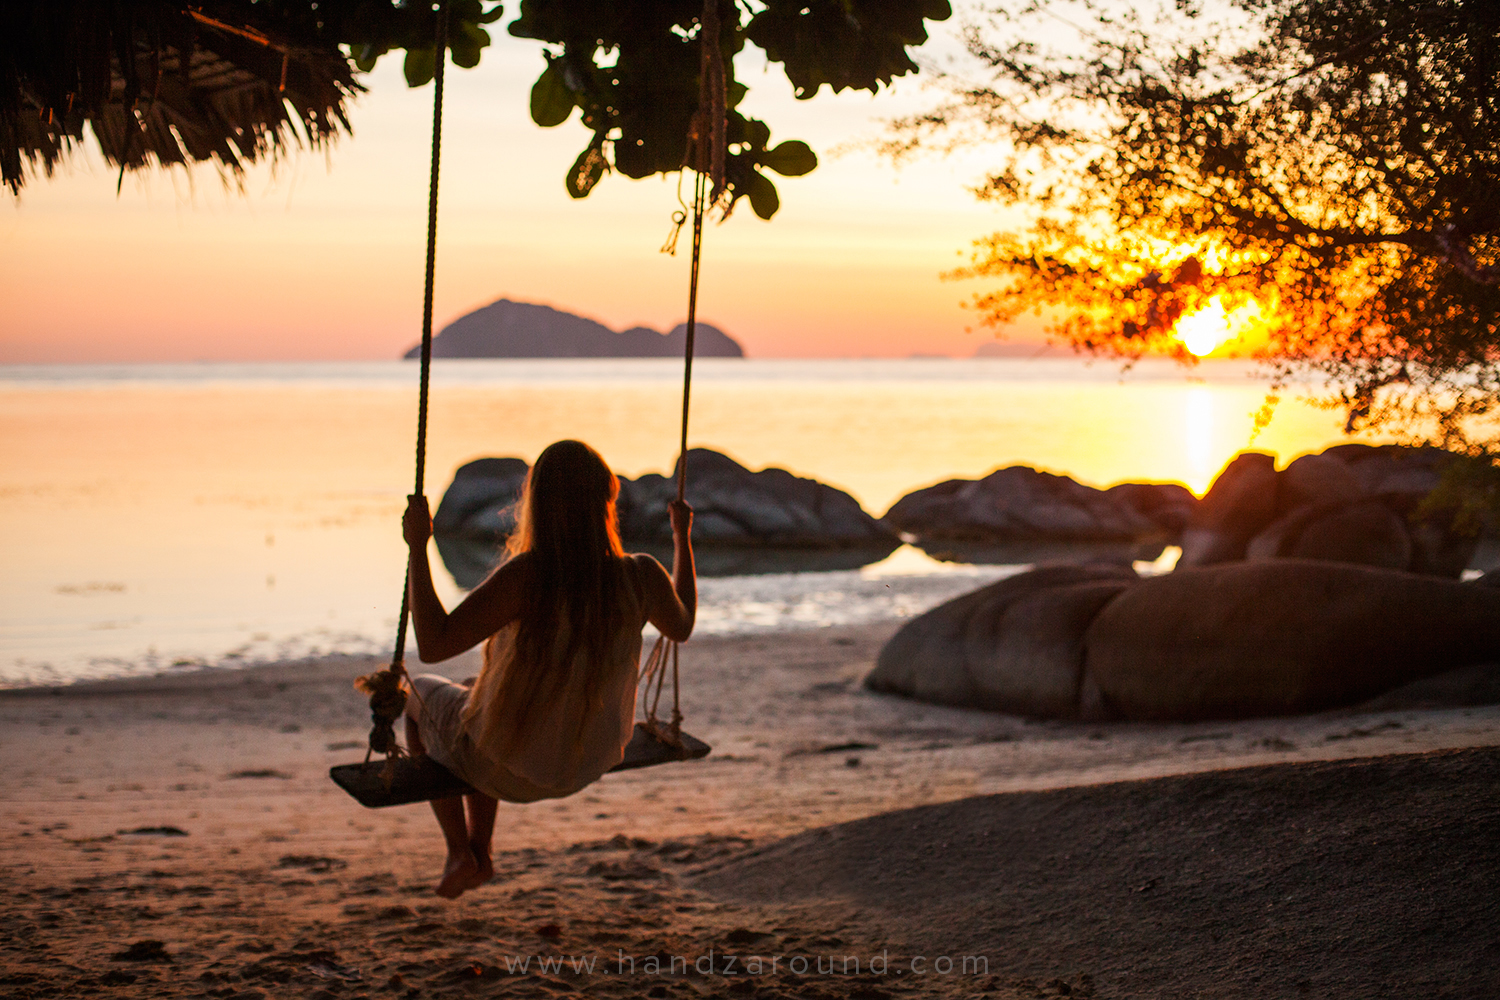 Hanna swinging in Koh Phangan, Thailand. It's better to spend your travel budget on things like this, rather than on hospital, so a good travel insurance makes all the difference.